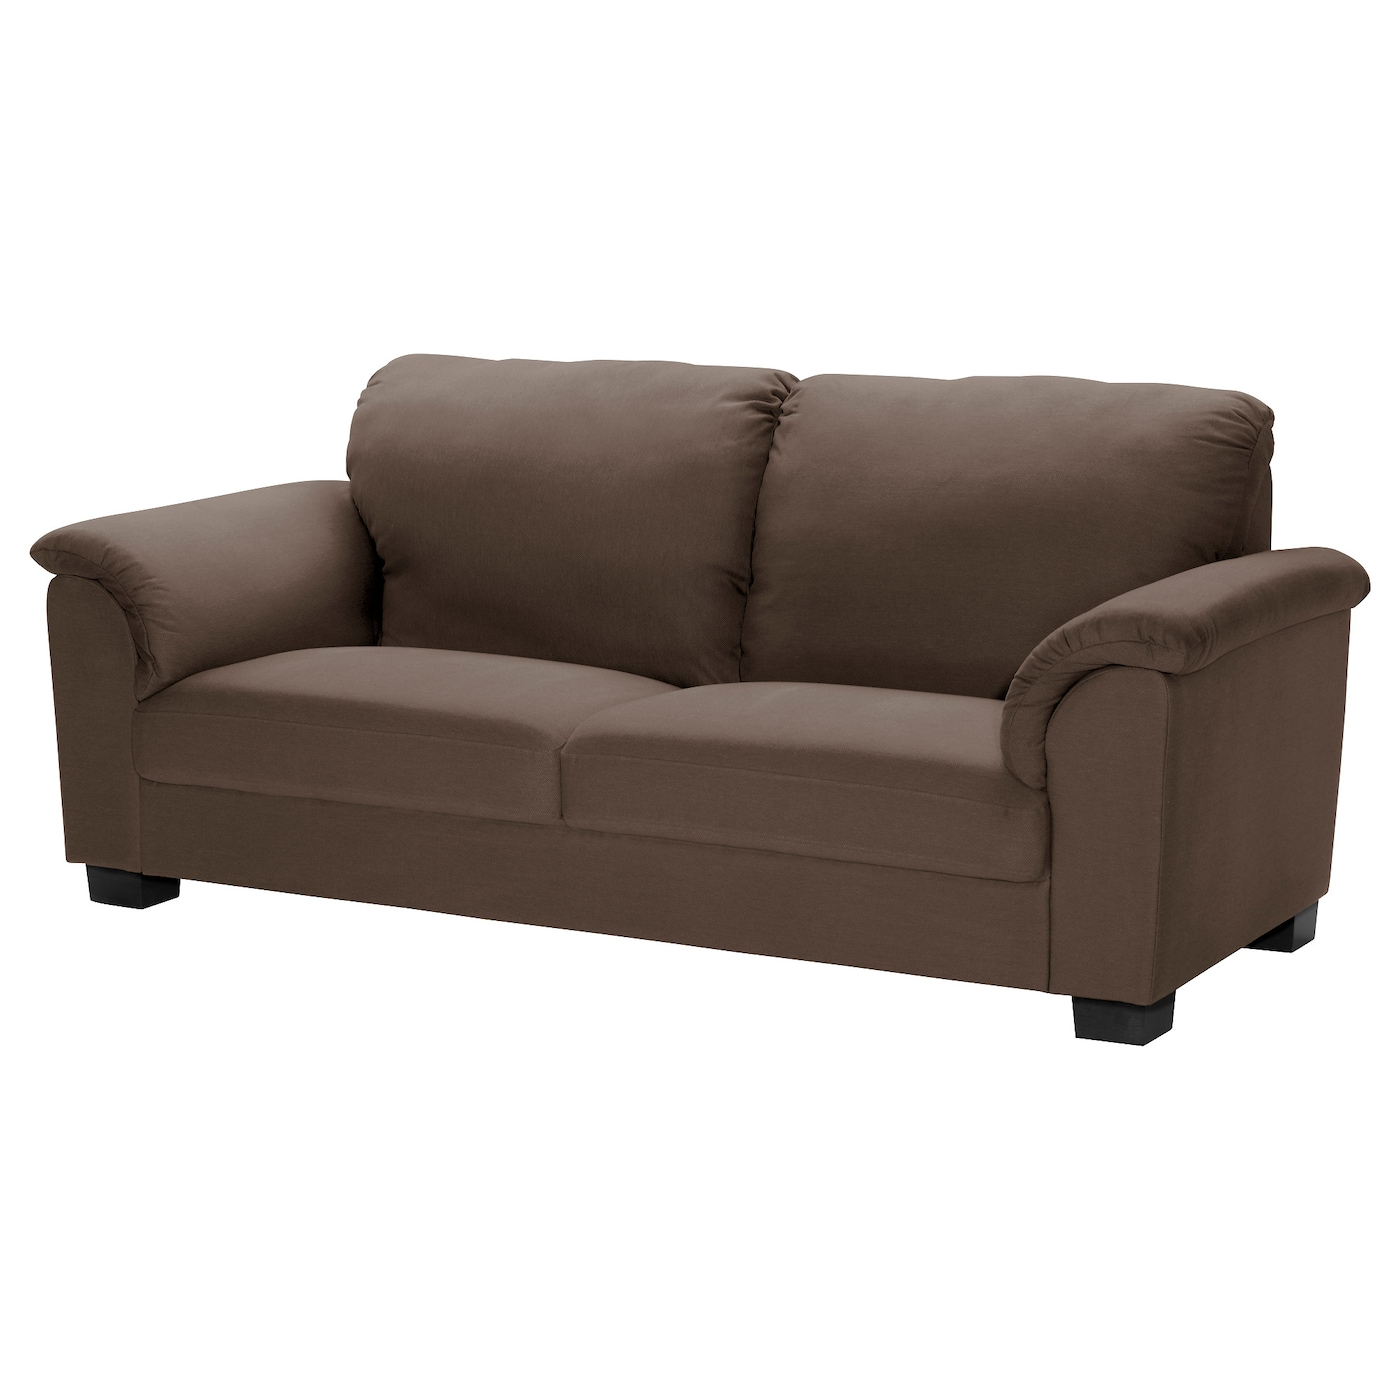 Tidafors three seat sofa dansbo medium brown ikea for Sofa zeichnung